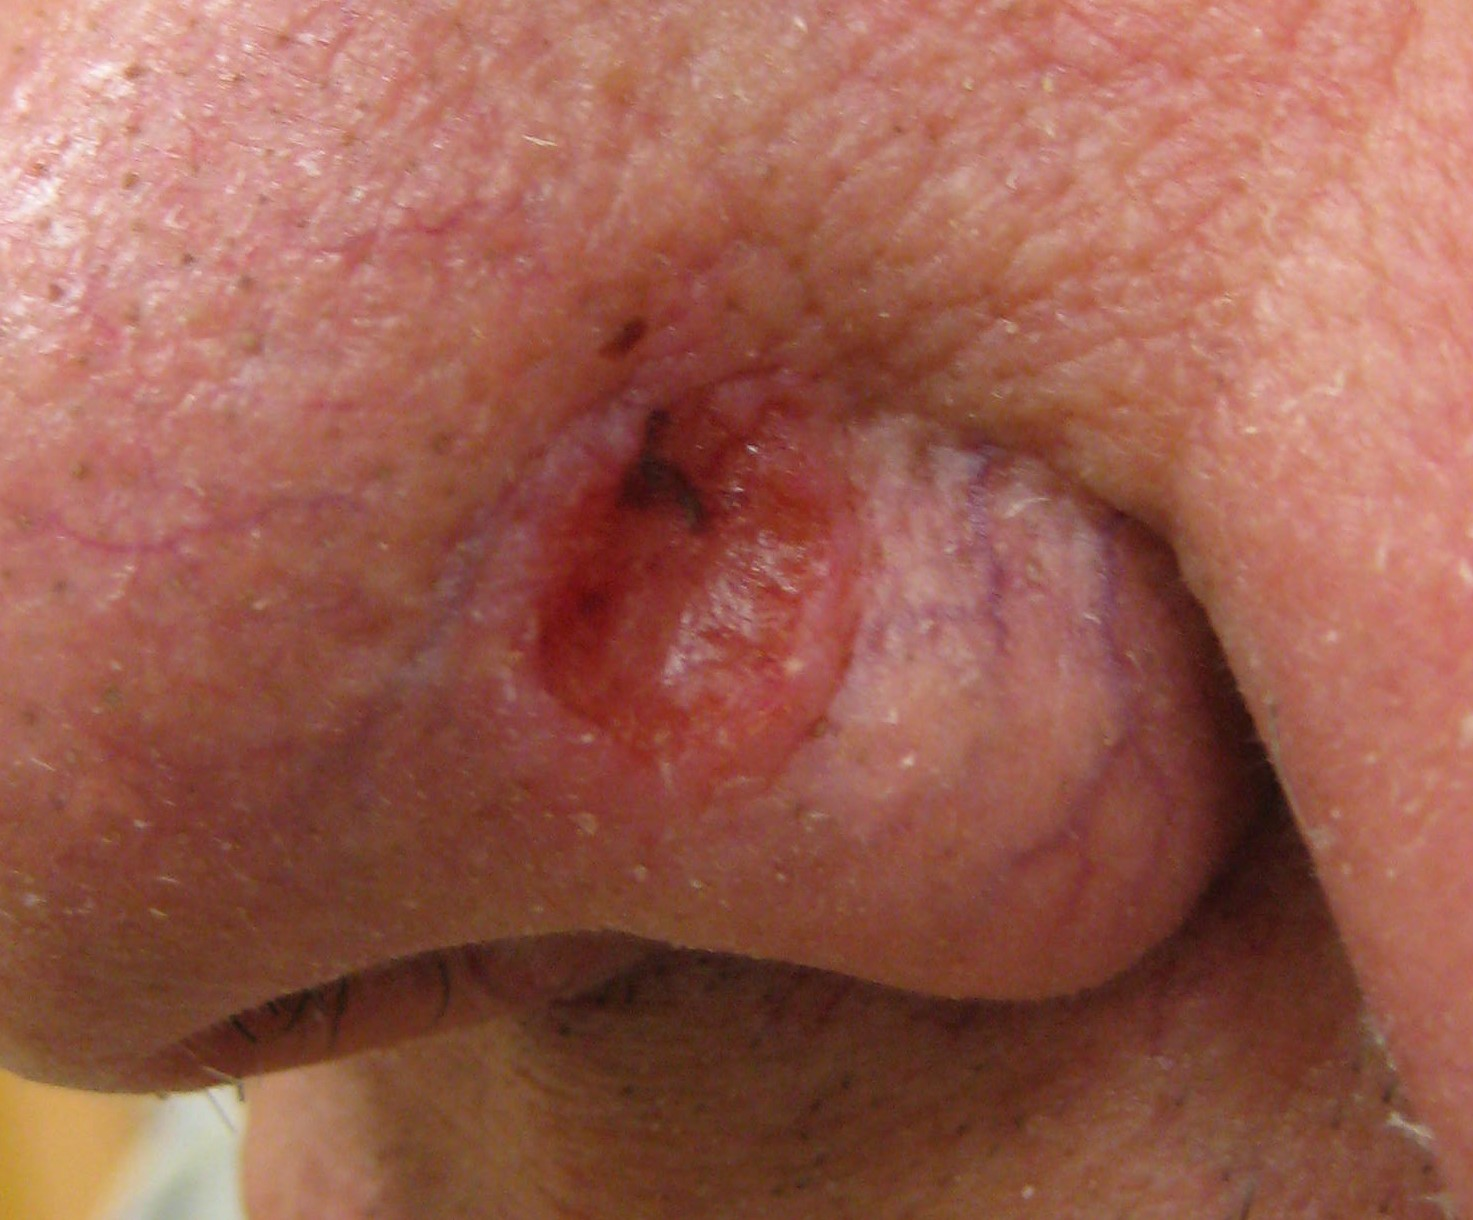 Why Does Basal Cell Carcinoma Affect the Nose so Much?